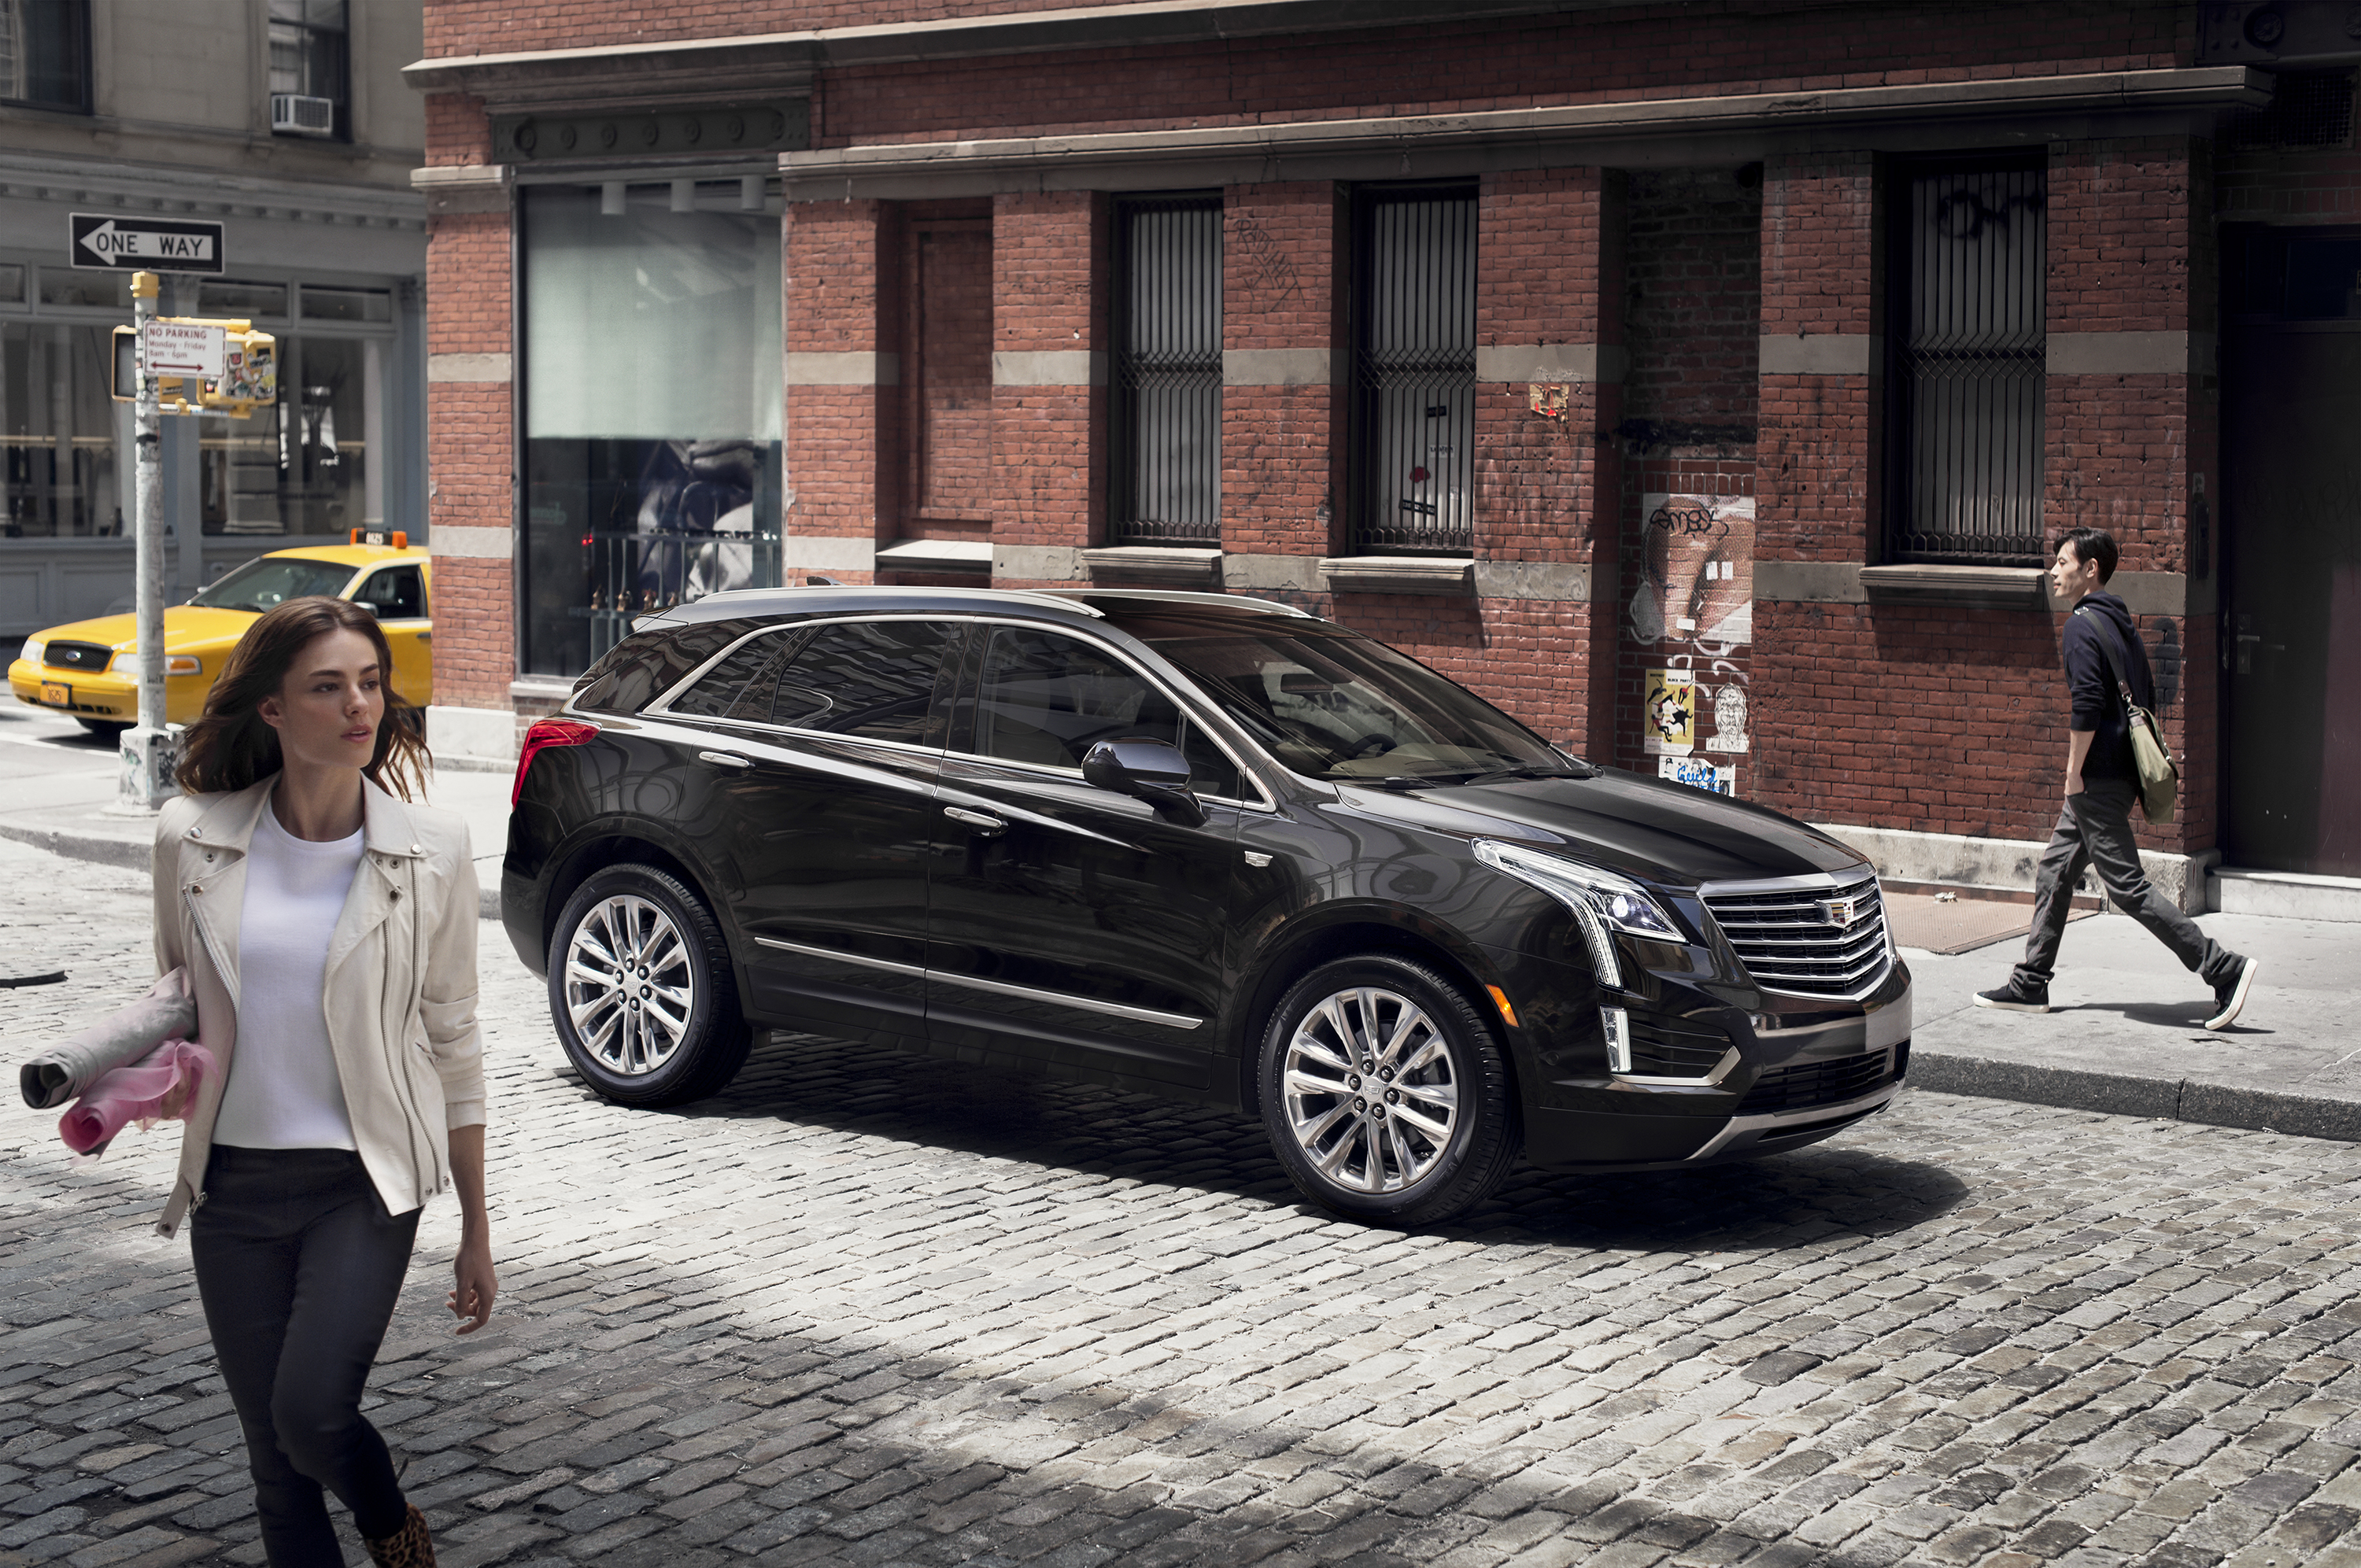 segment residual crossover srx value blog gm in leads authority cadillac